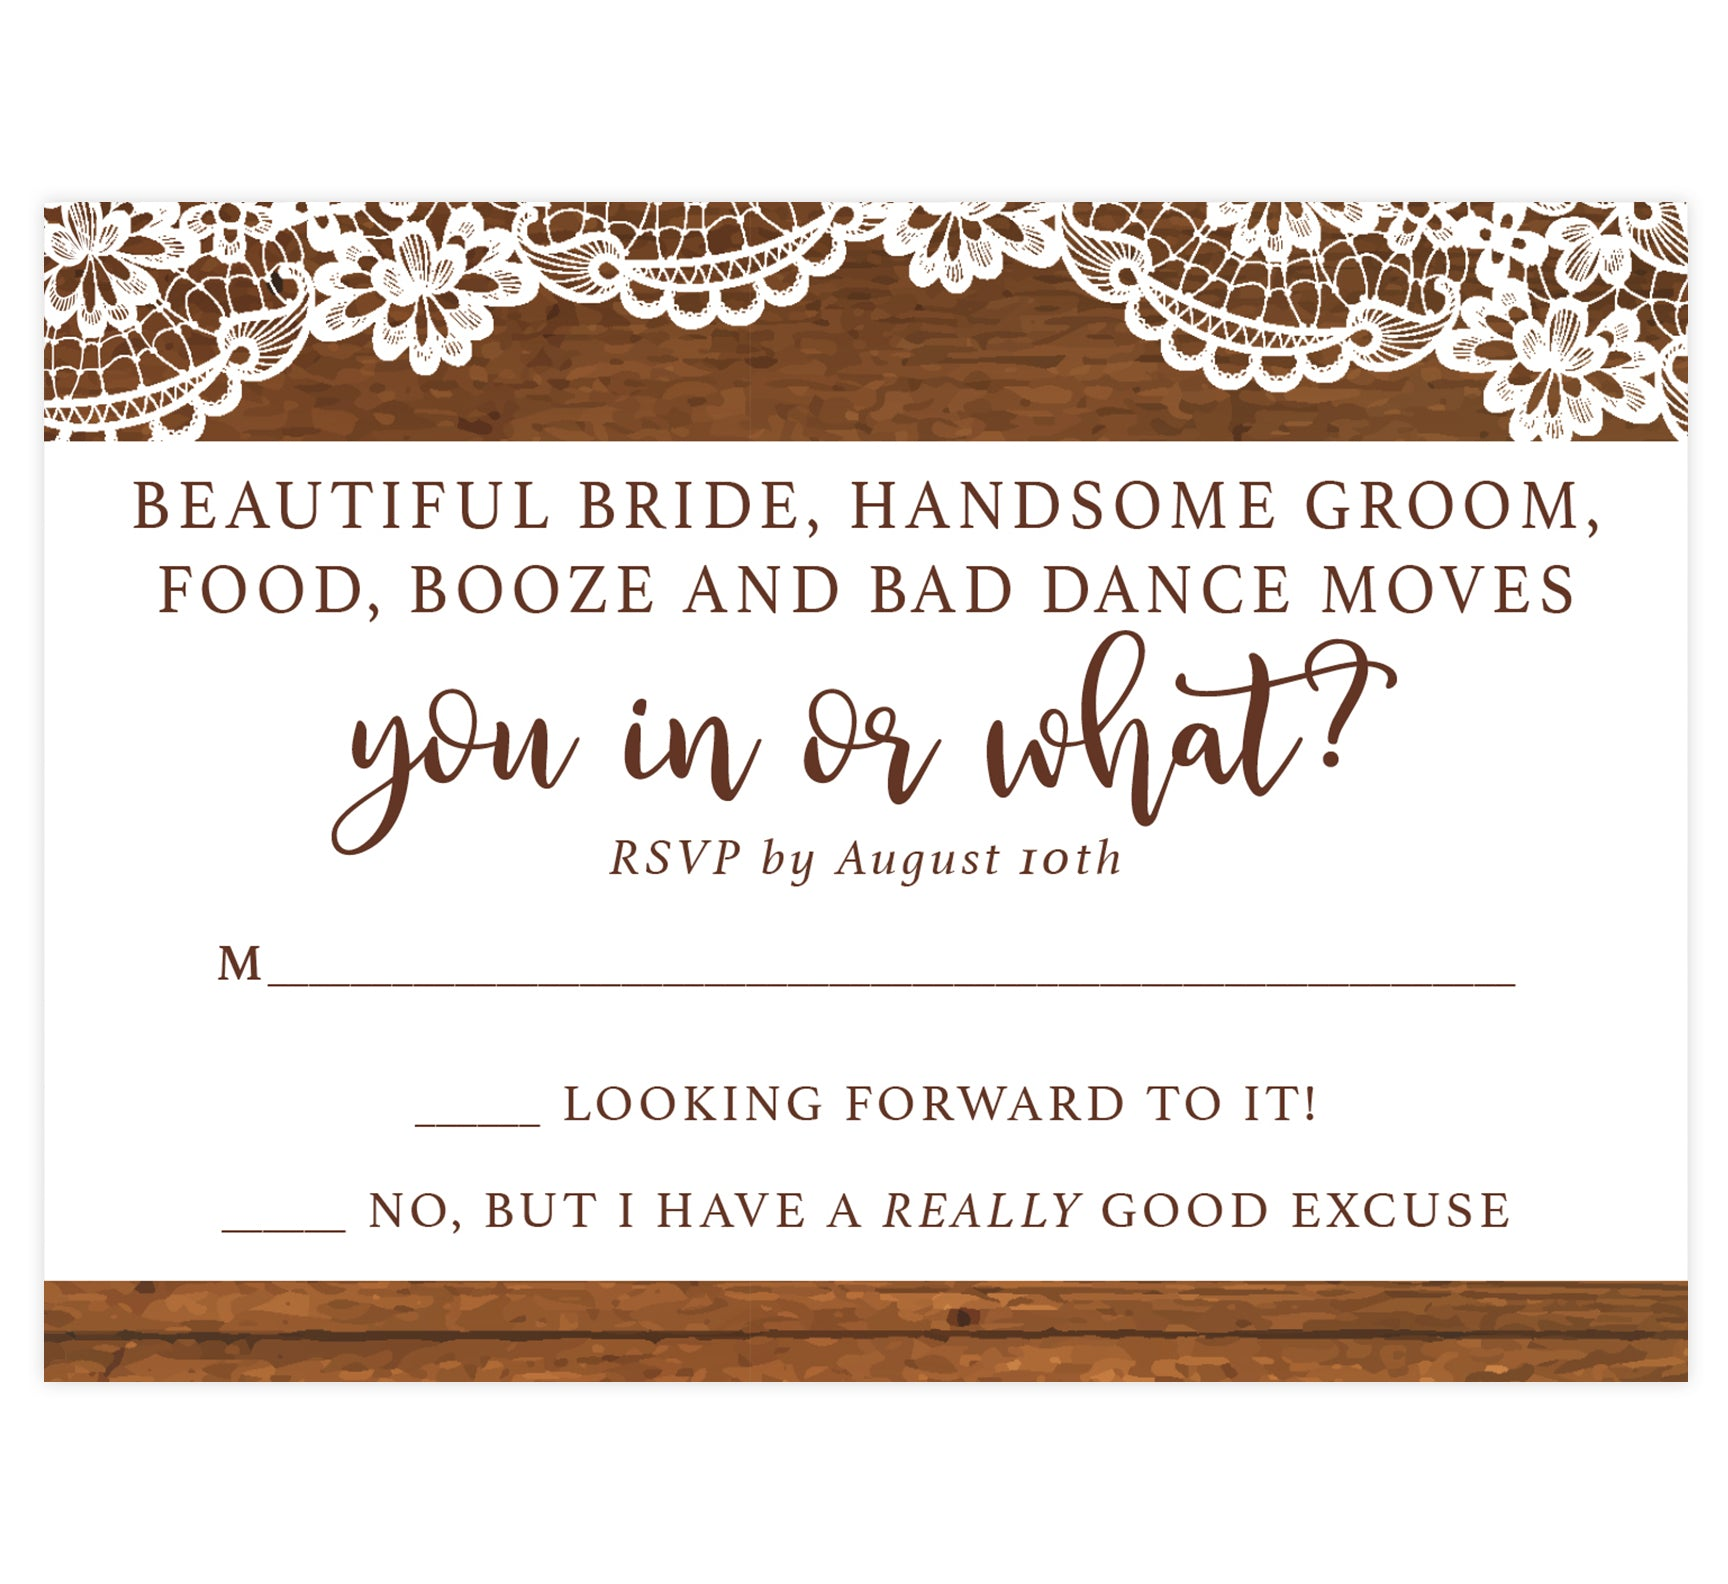 Rustic Glow Wedding Invitation; wood on the top and bottom edges with lace on the top and brown text